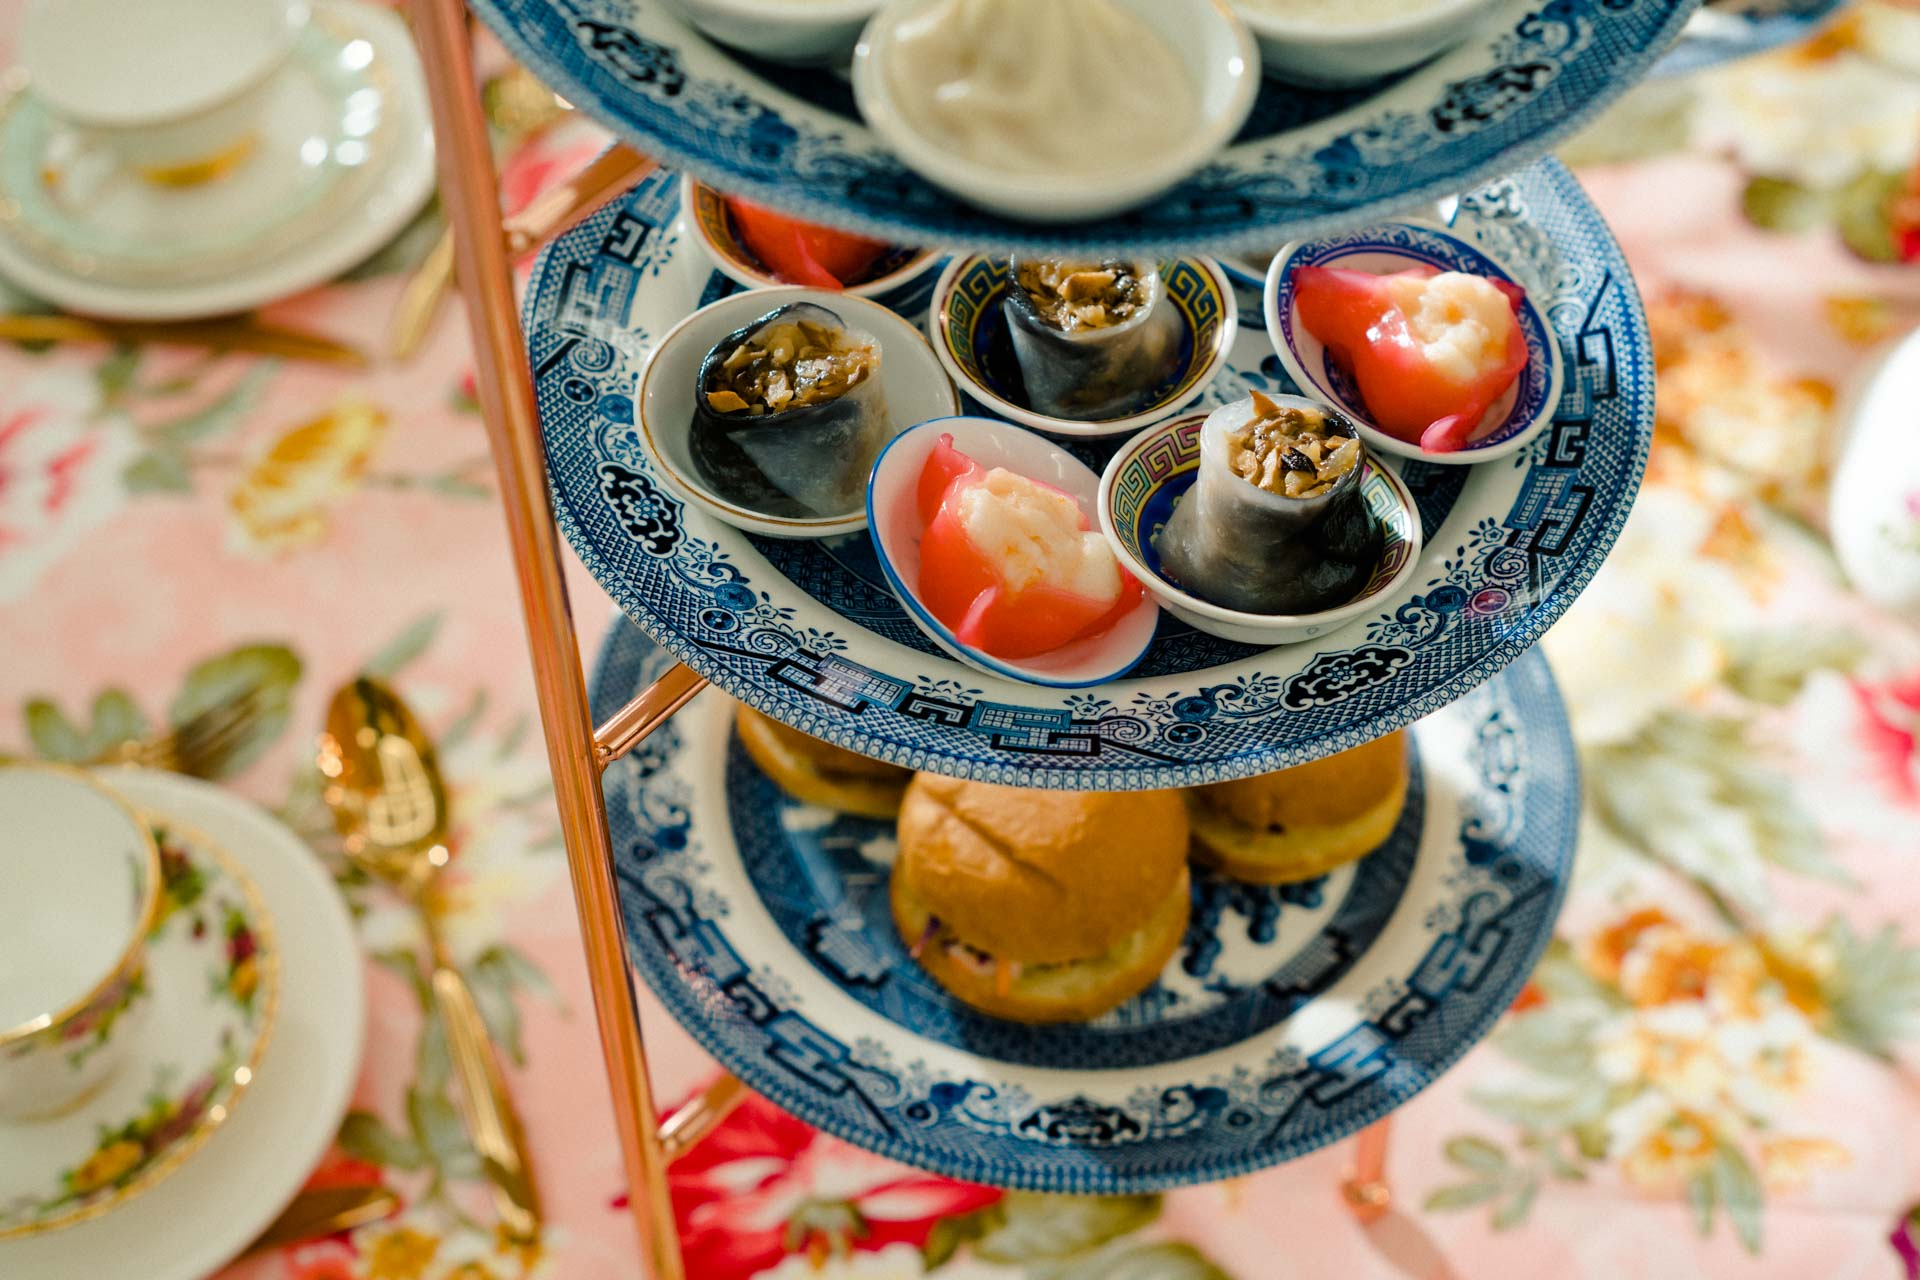 shang-high-tea-sydney-57.jpg